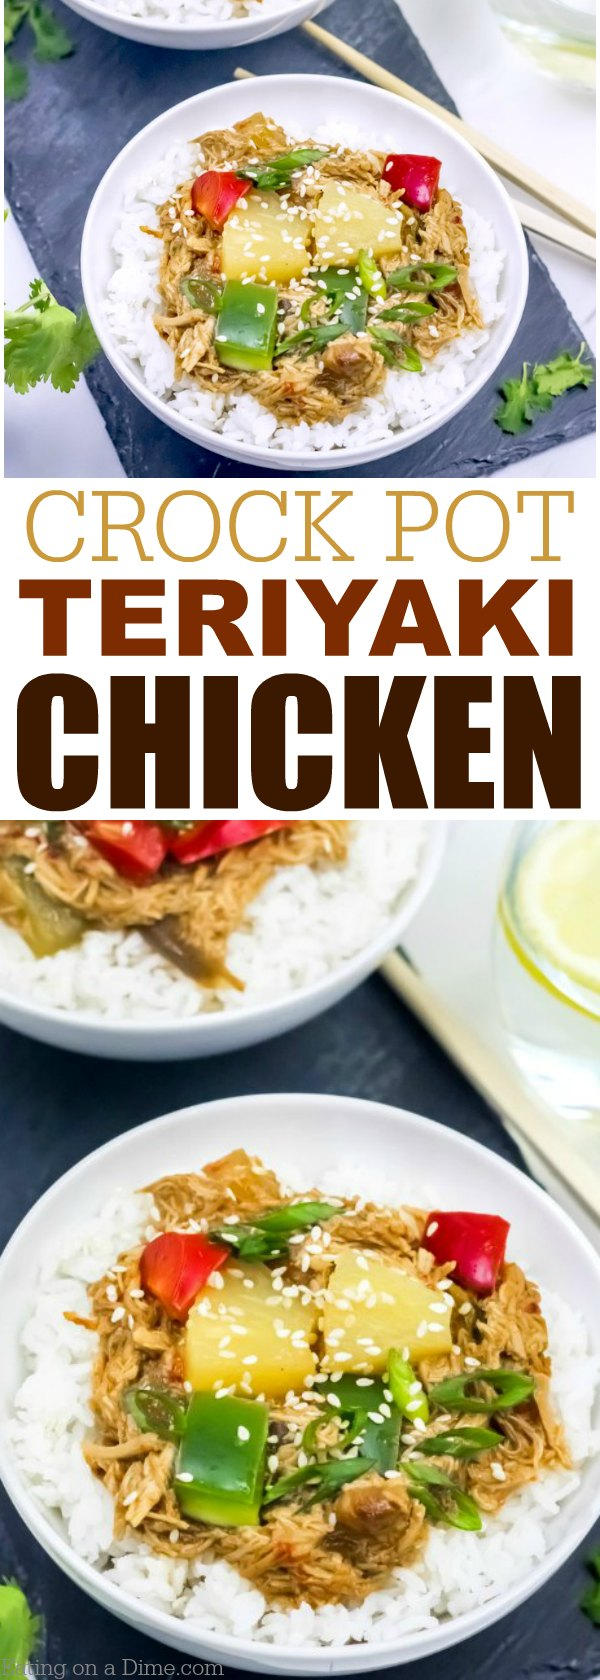 This is an easy Crock pot Teriyaki Chicken Recipe that your family will love. Crock pot chicken teriyaki is a quick and easy crock pot recipe that can be thrown together in minutes.